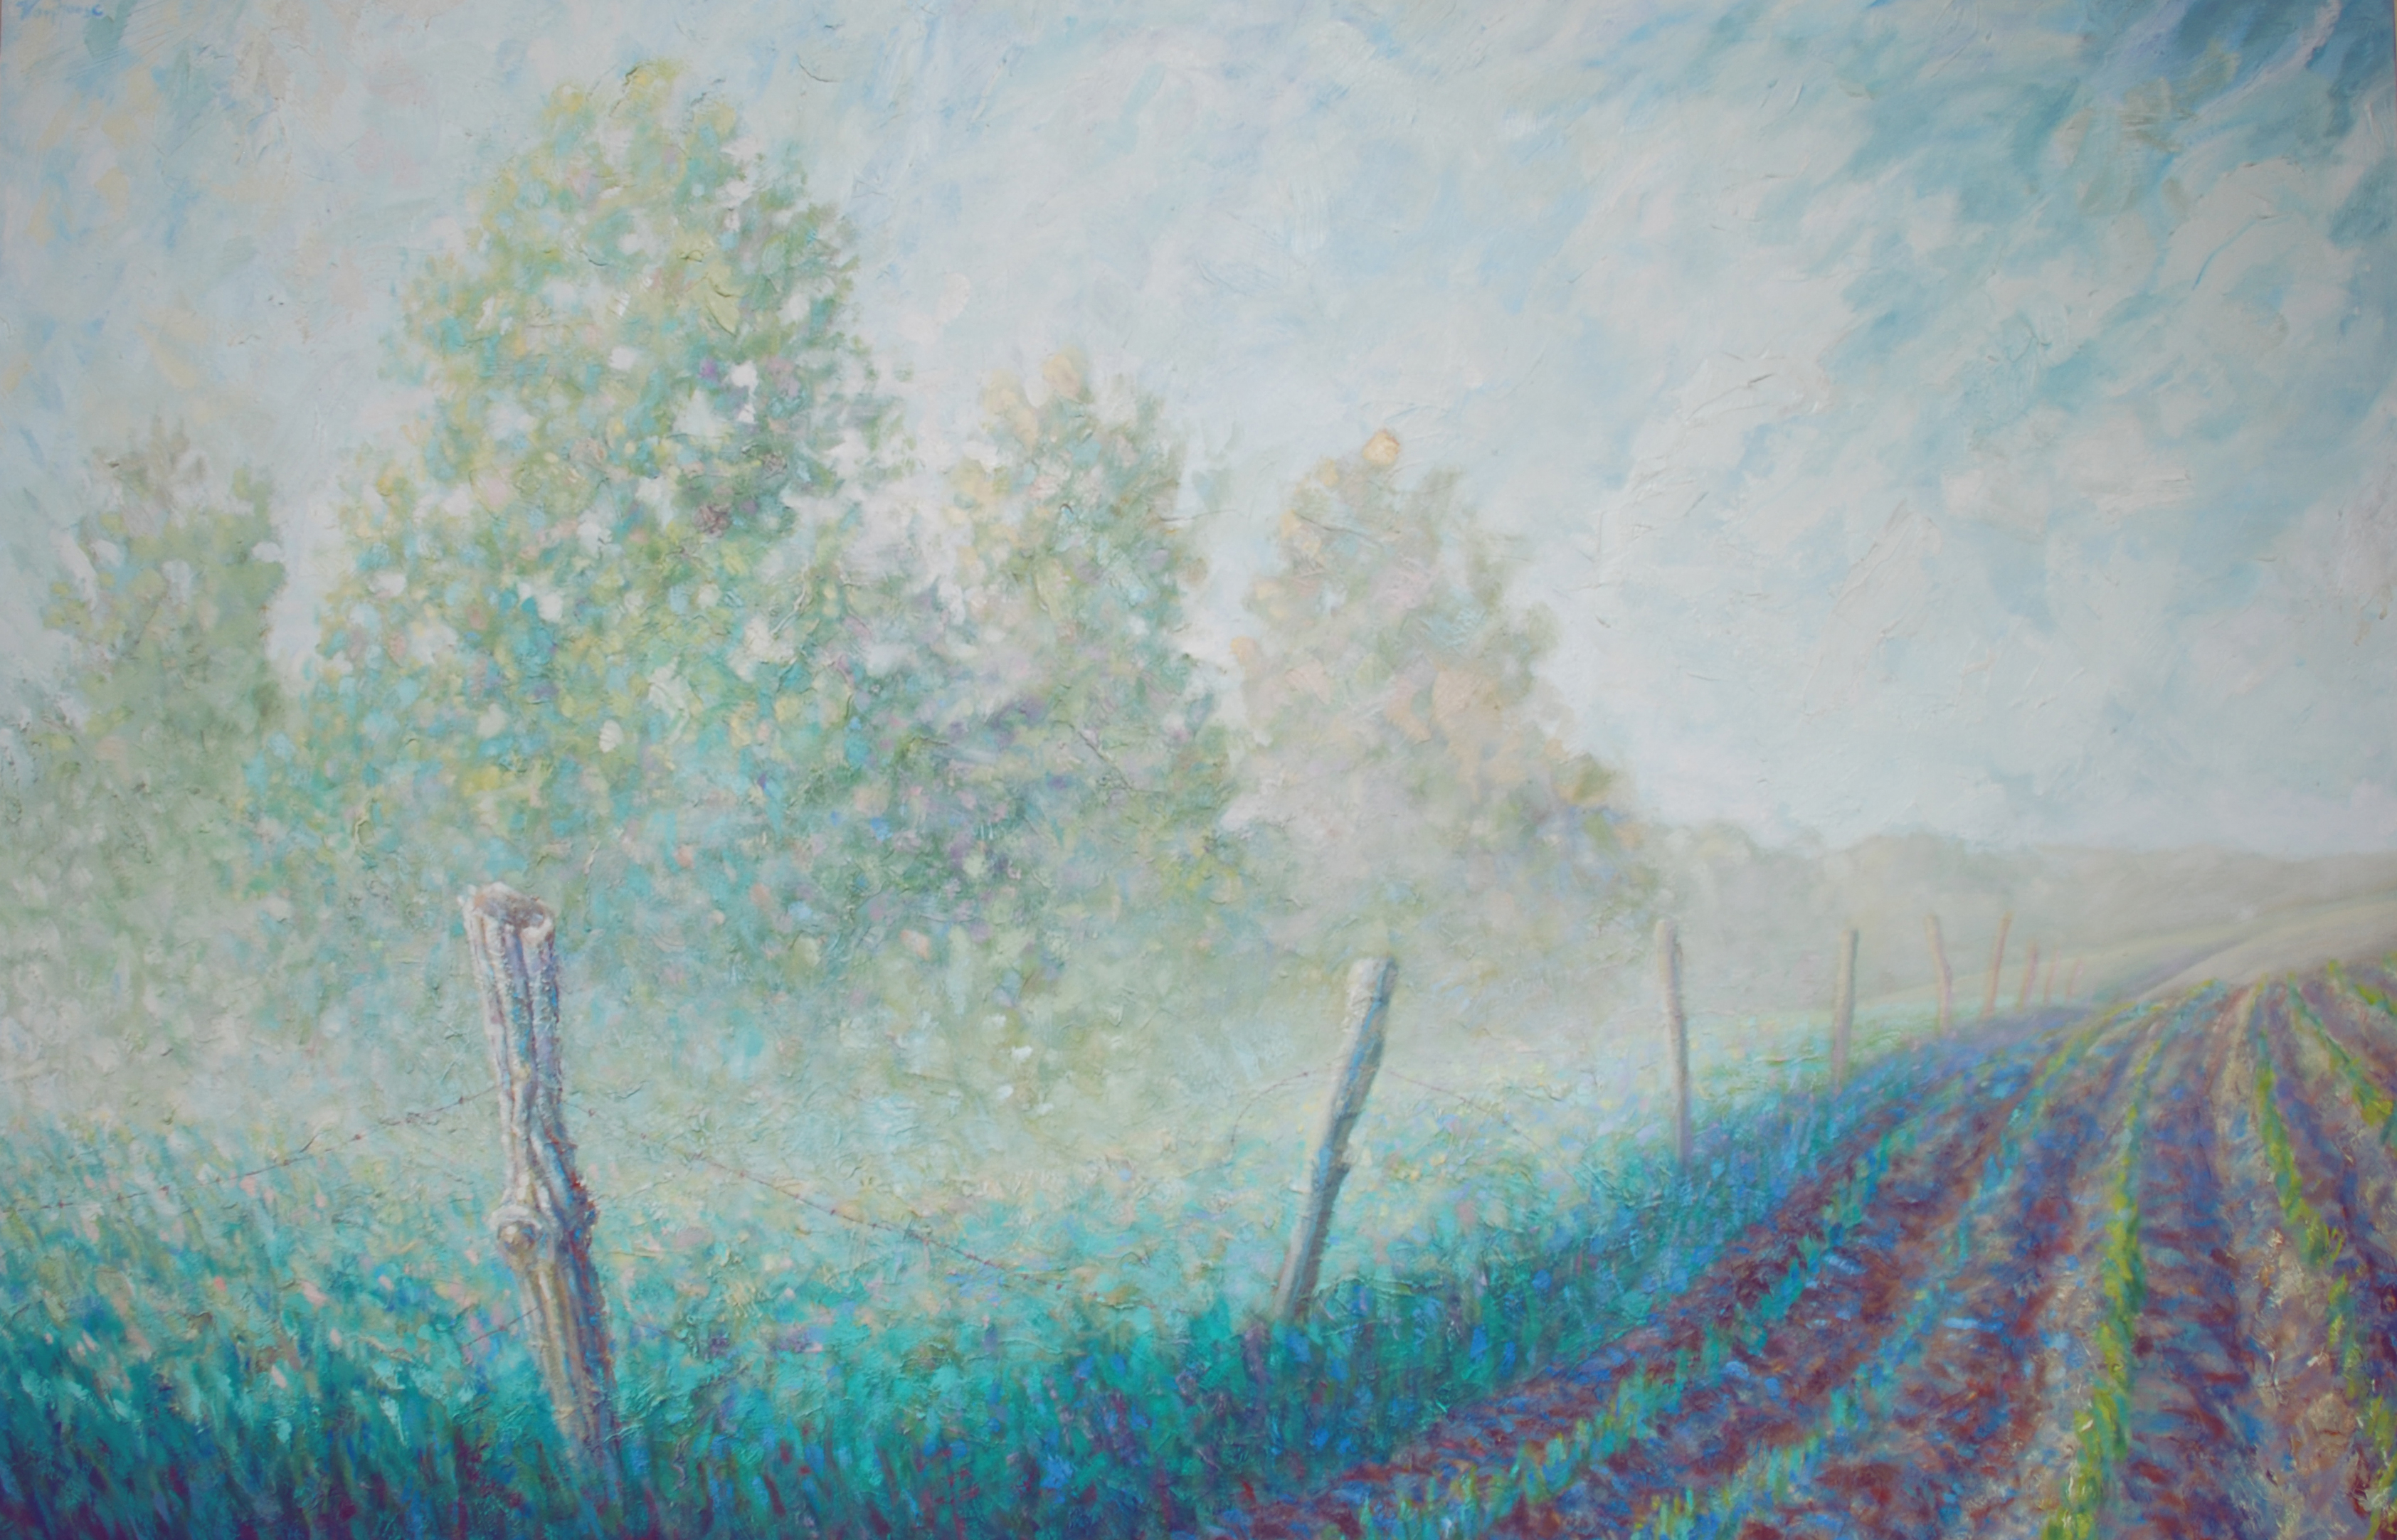 Viridian Morning. Oil on Canvas. 40x60 inches. 2016. Accepted into Art For Life Fundraiser. Columbus, Ohio. This year's sponsor is Pizzuti Collection.